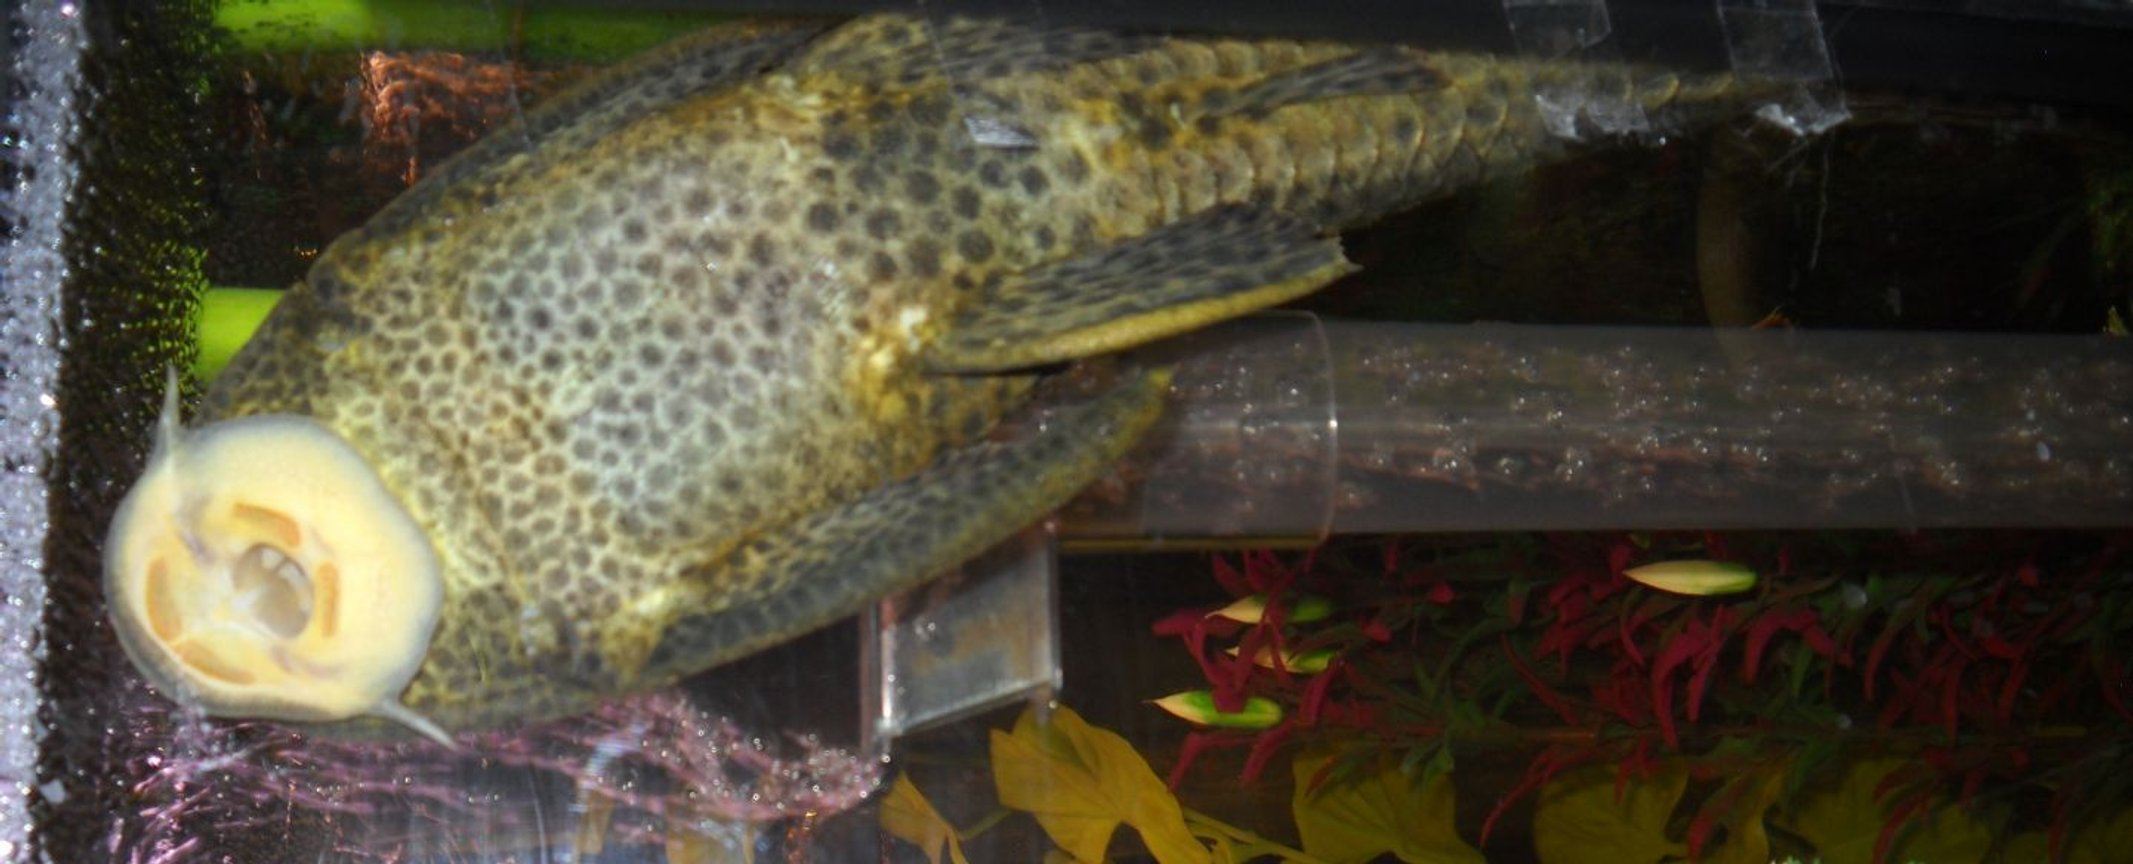 freshwater fish - glyptoperichthys gibbiceps - sailfin pleco (l-83) stocking in 55 gallons tank - pleco